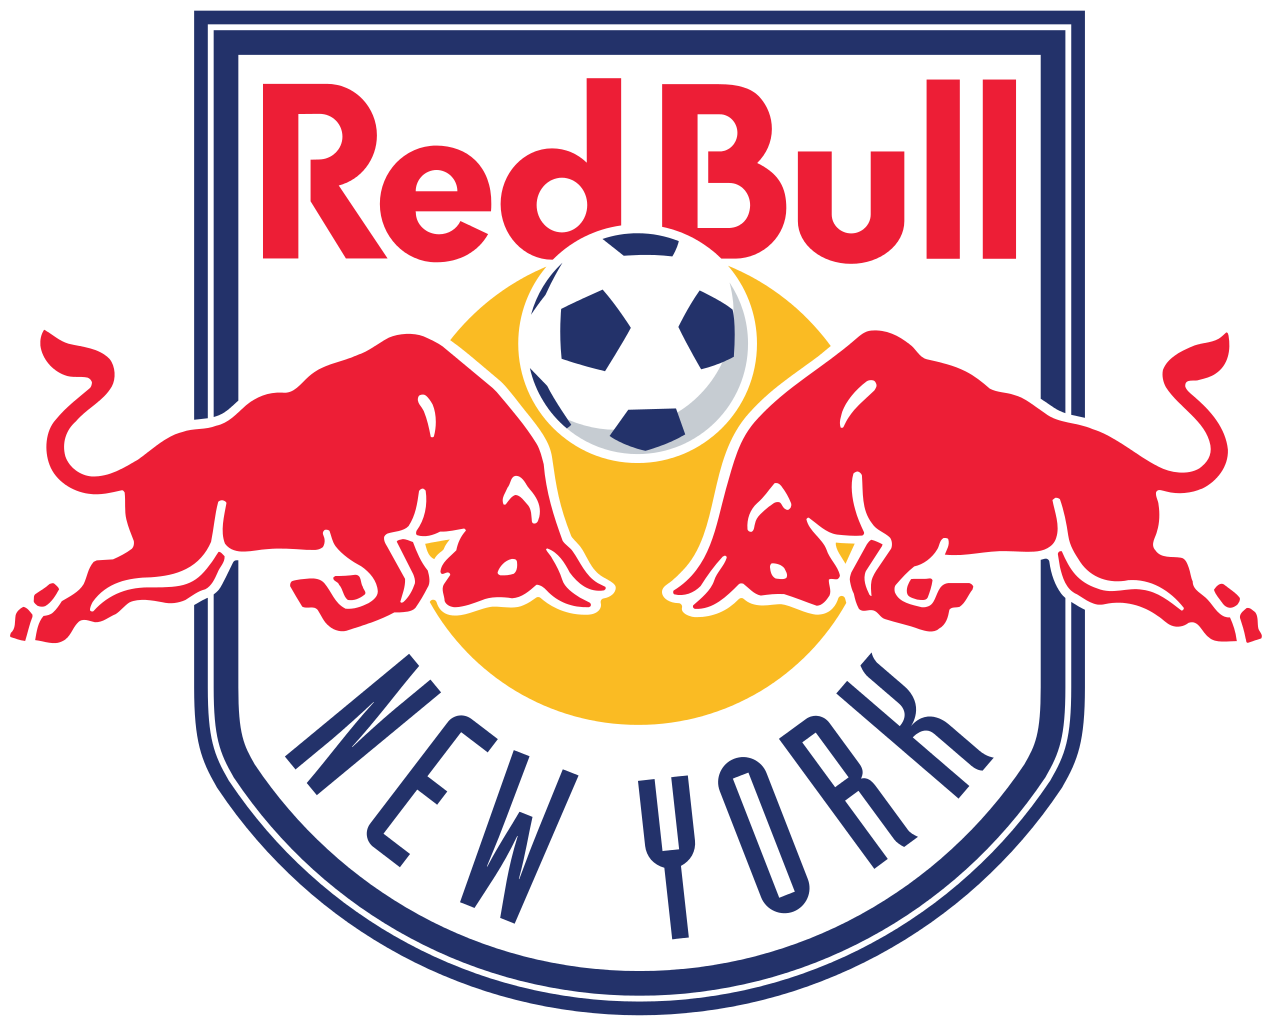 Would Love To Charge Off To New York Like A Red Bull Needthatlook Nye New York Red Bulls Ny Red Bulls Red Bull